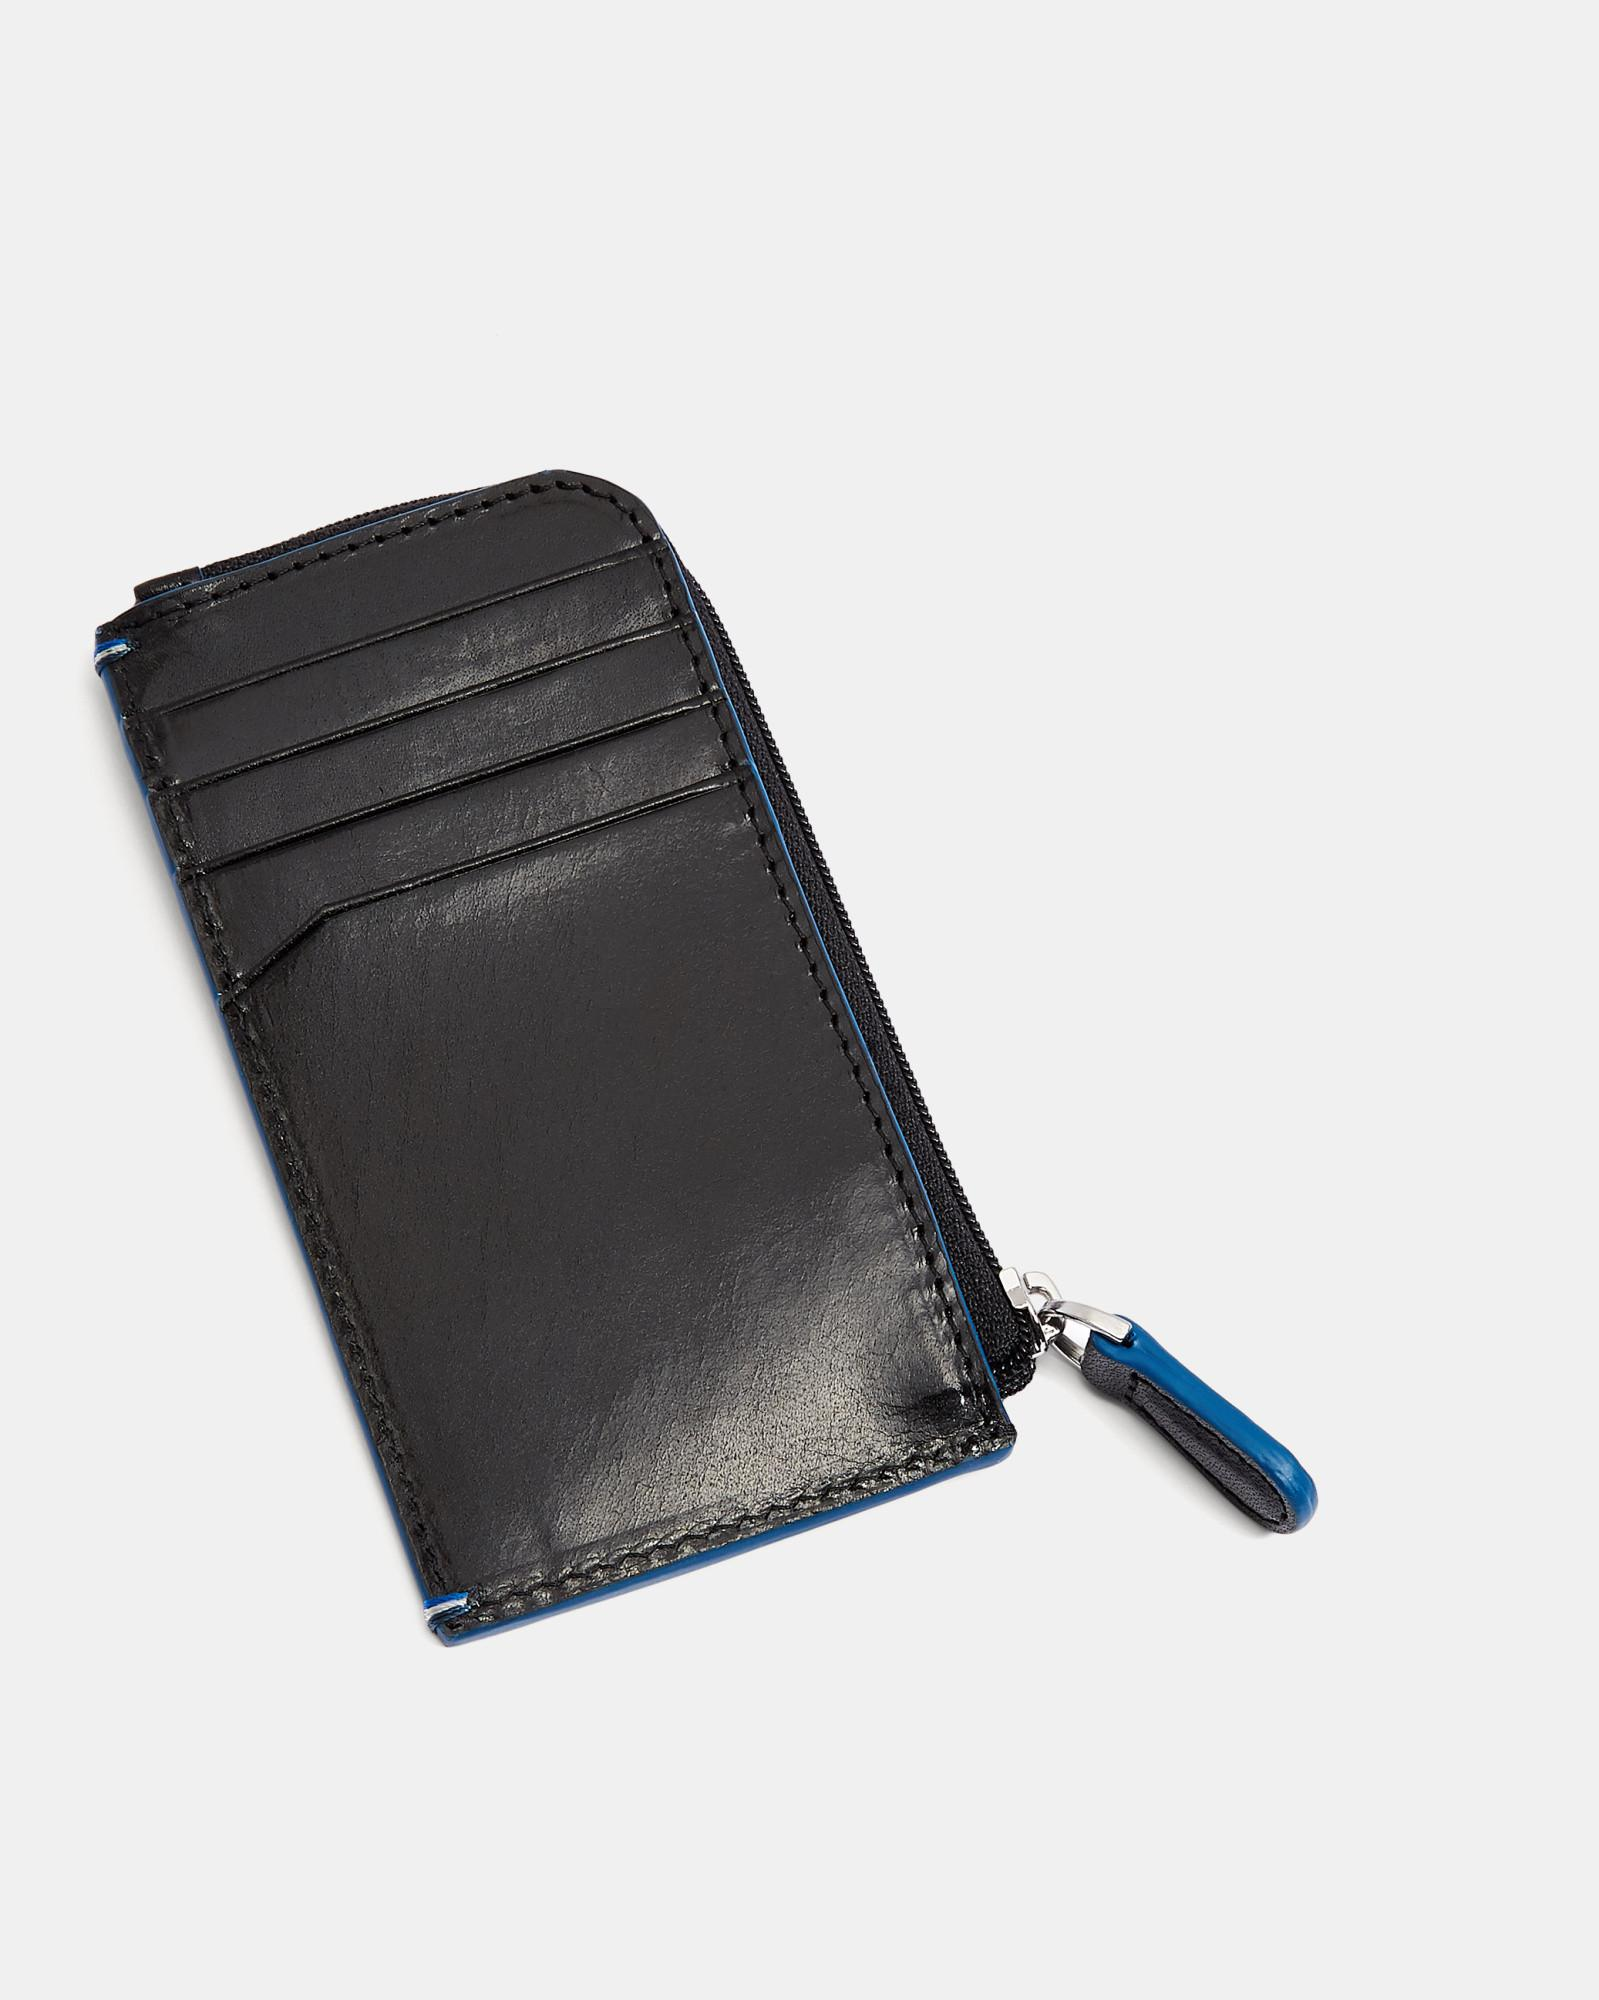 f51a75b5cff Lyst - Ted Baker Leather Card Holder in Black for Men